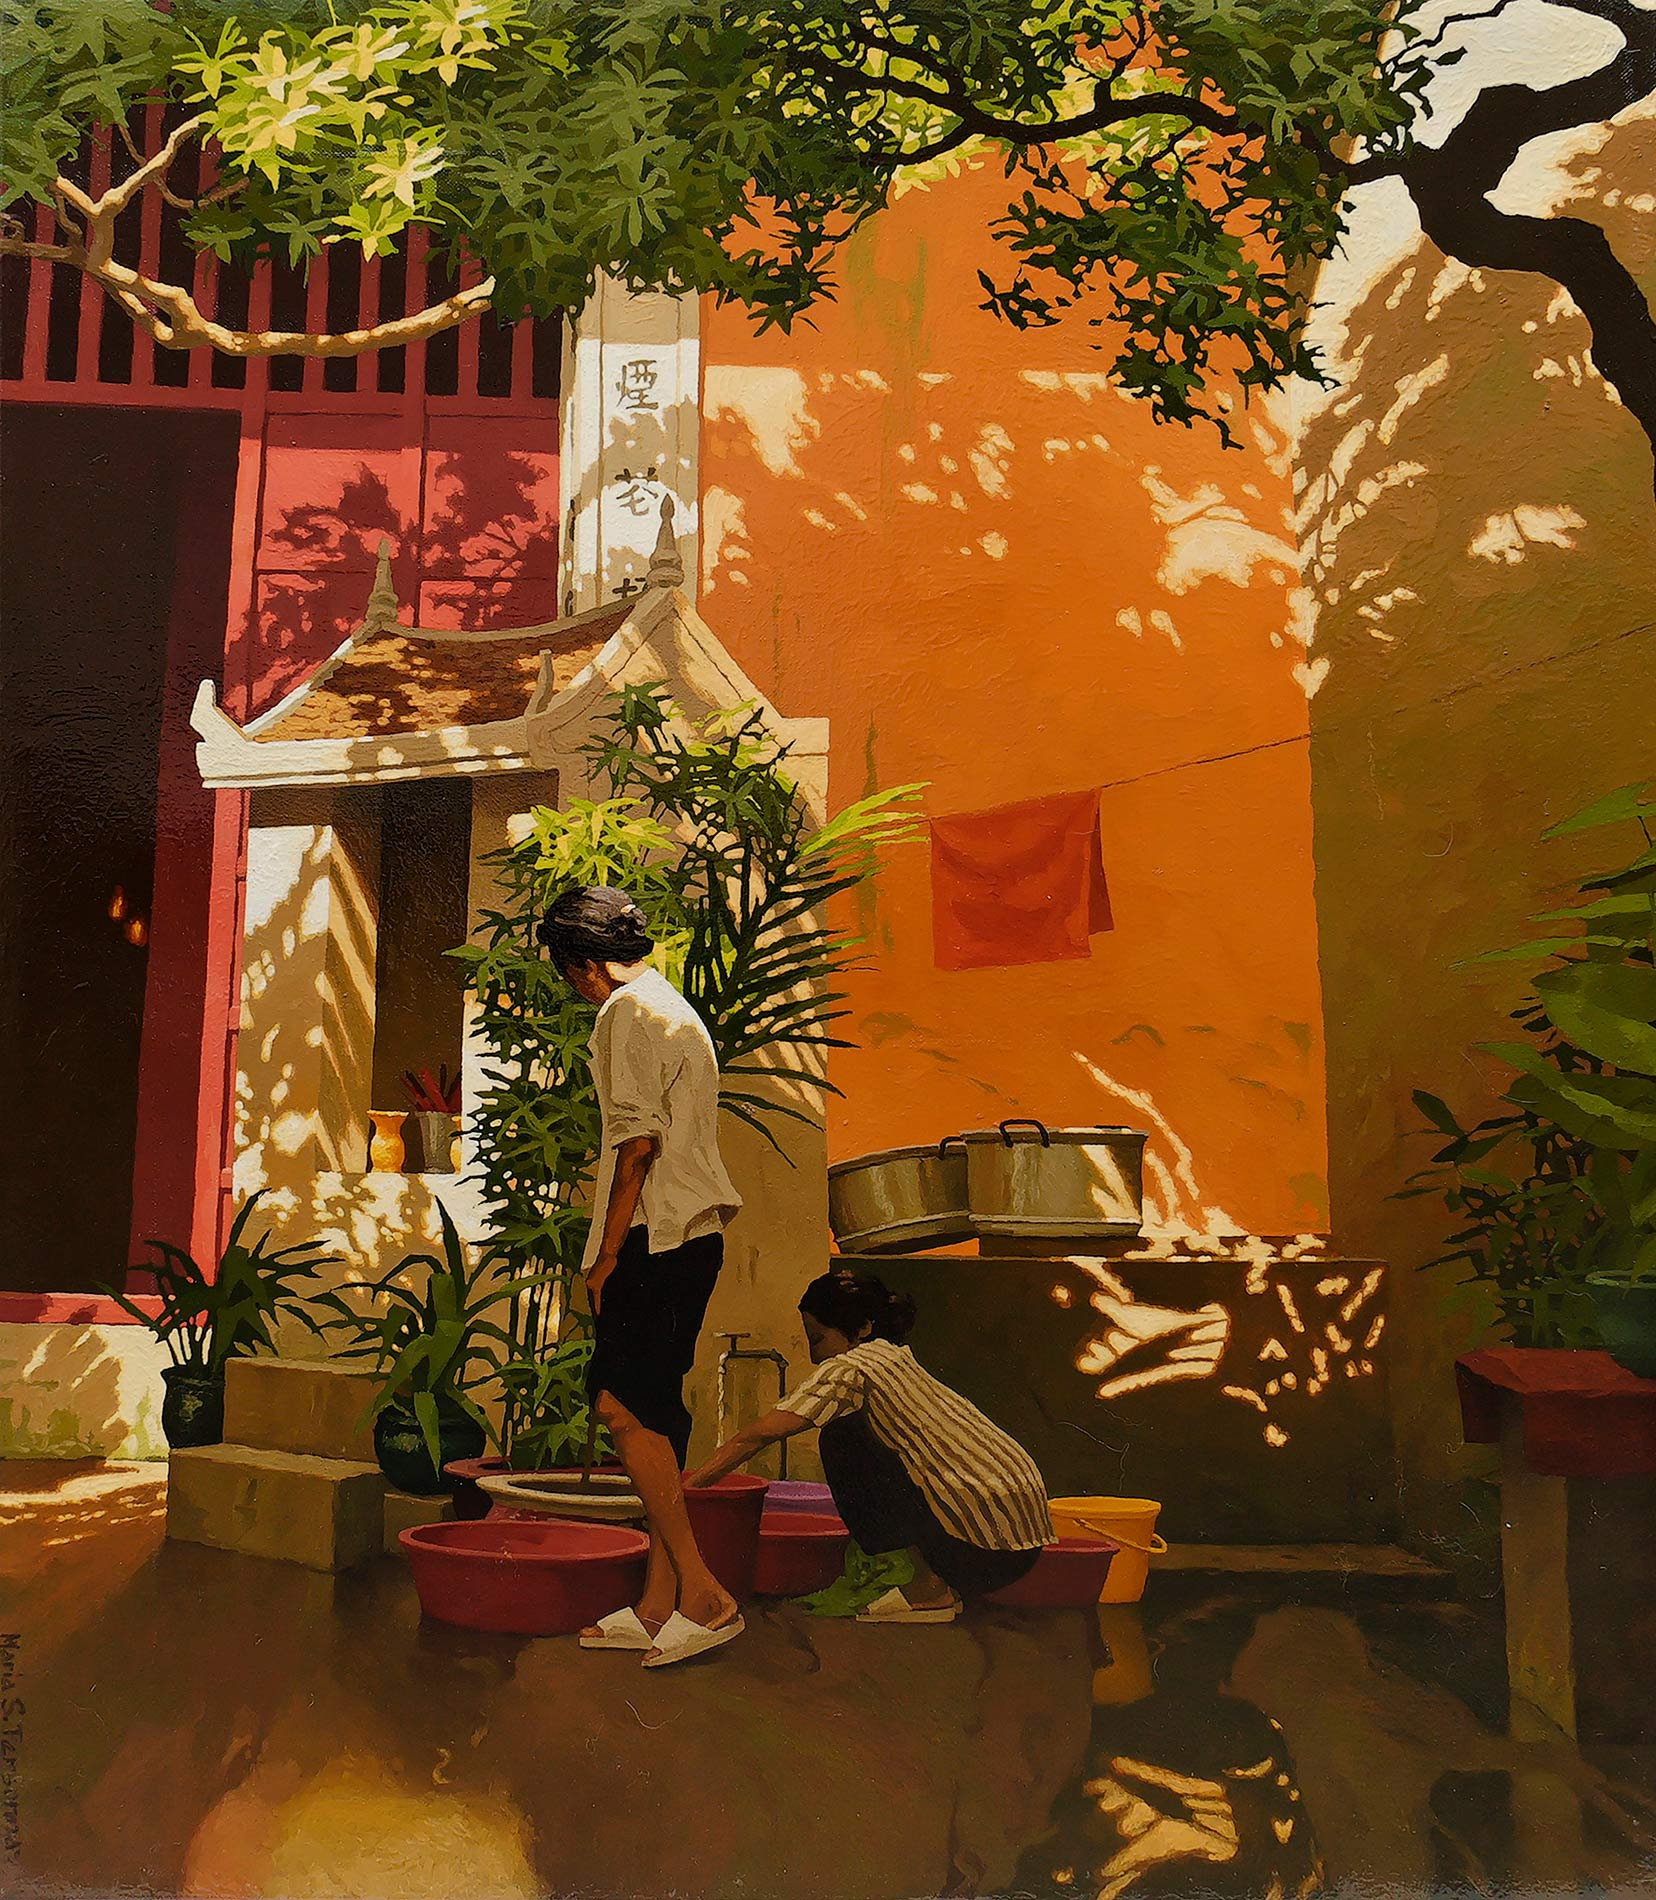 Temple on Ly Quoc Su street, Hanoi